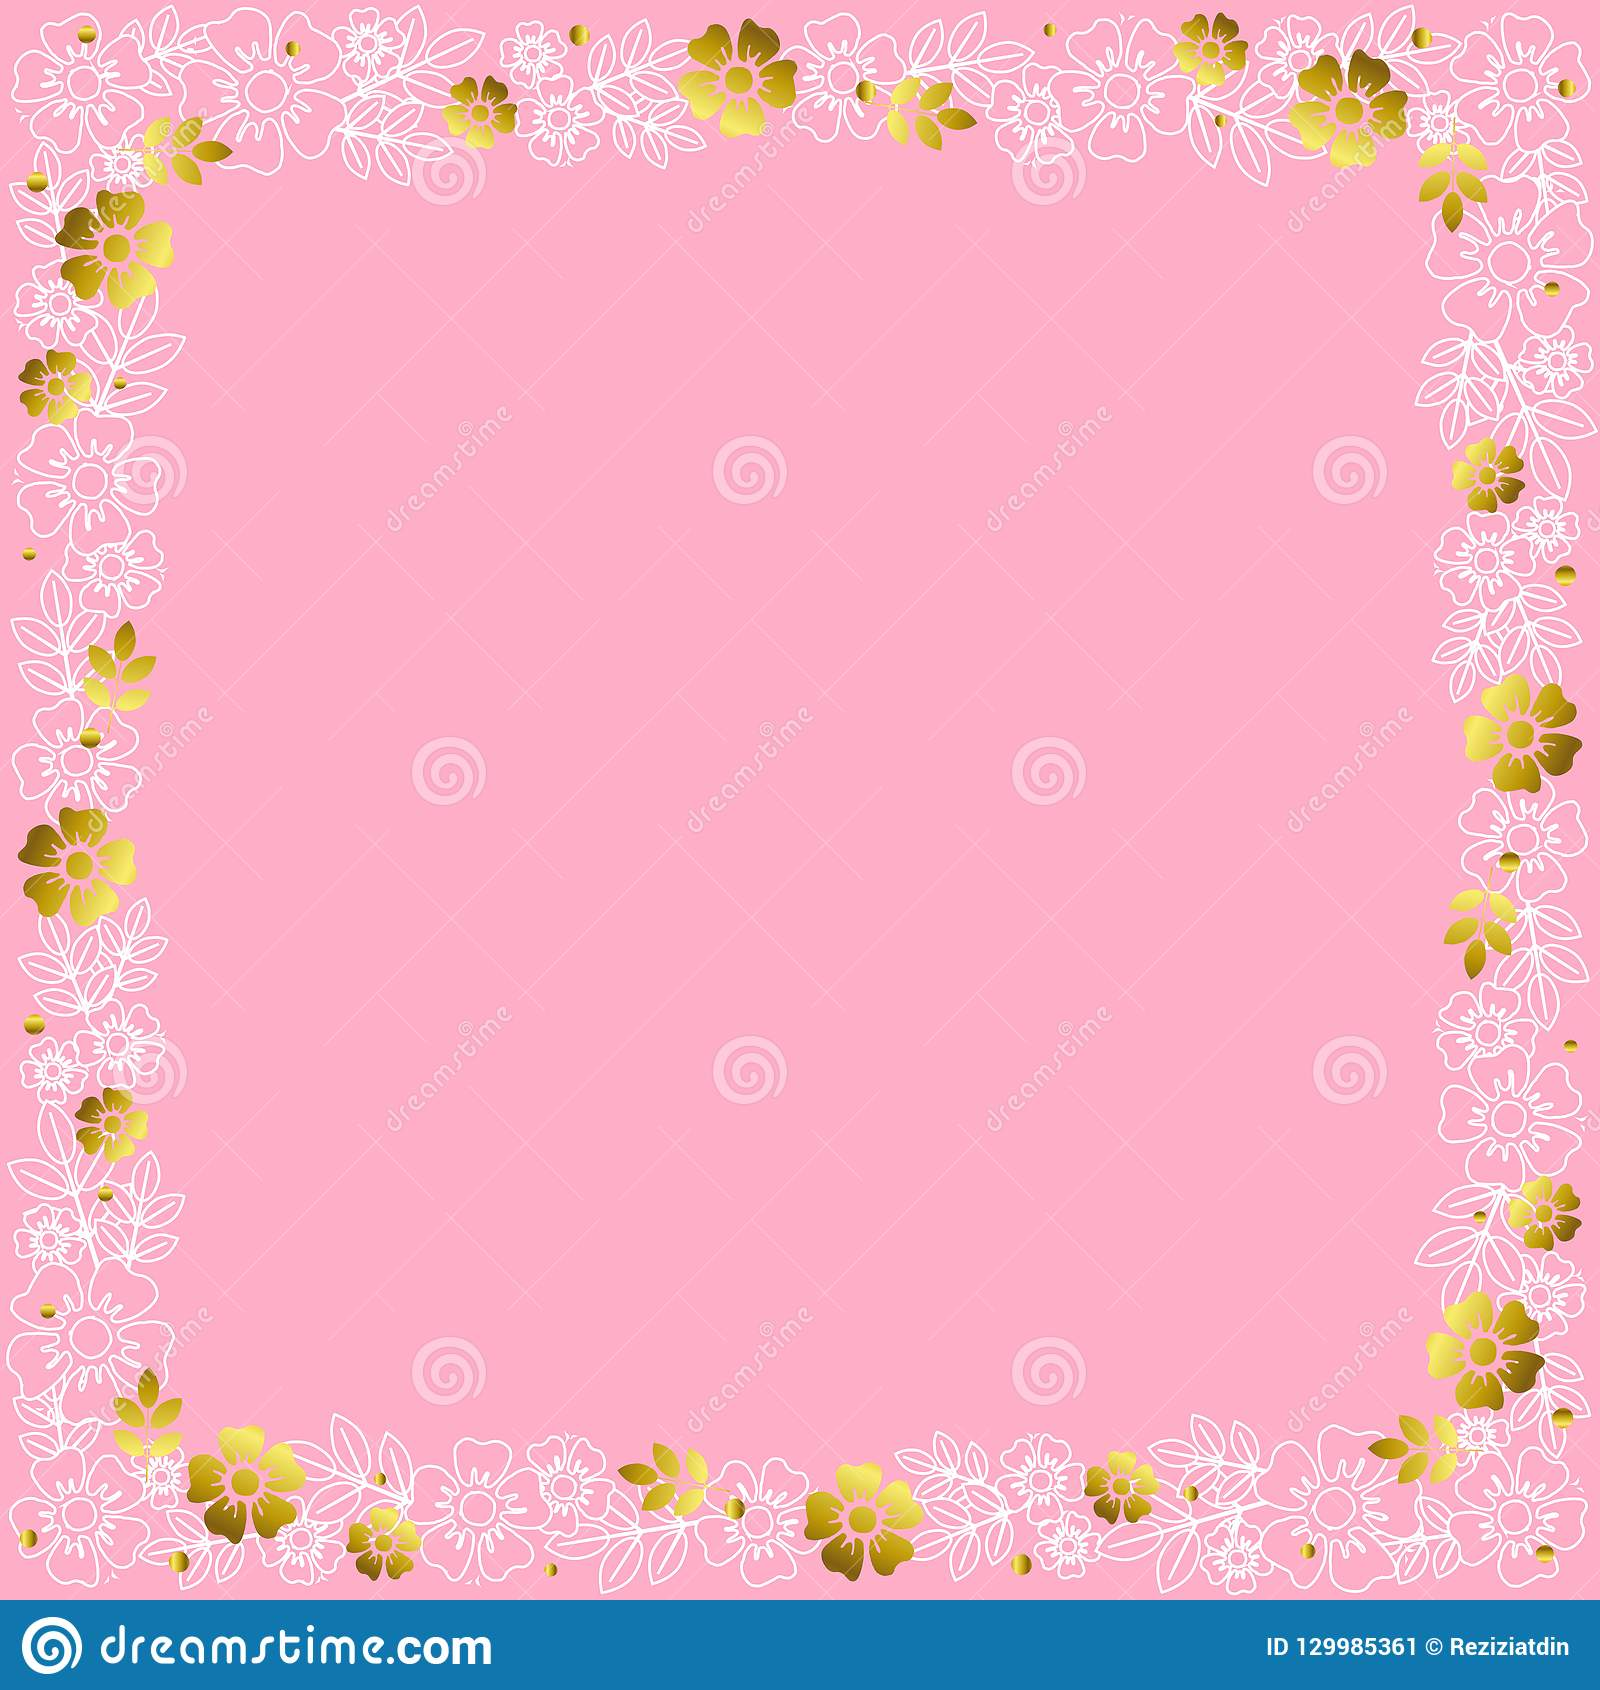 Decorative square frame of white outline and golden flowers and leaves on pink background